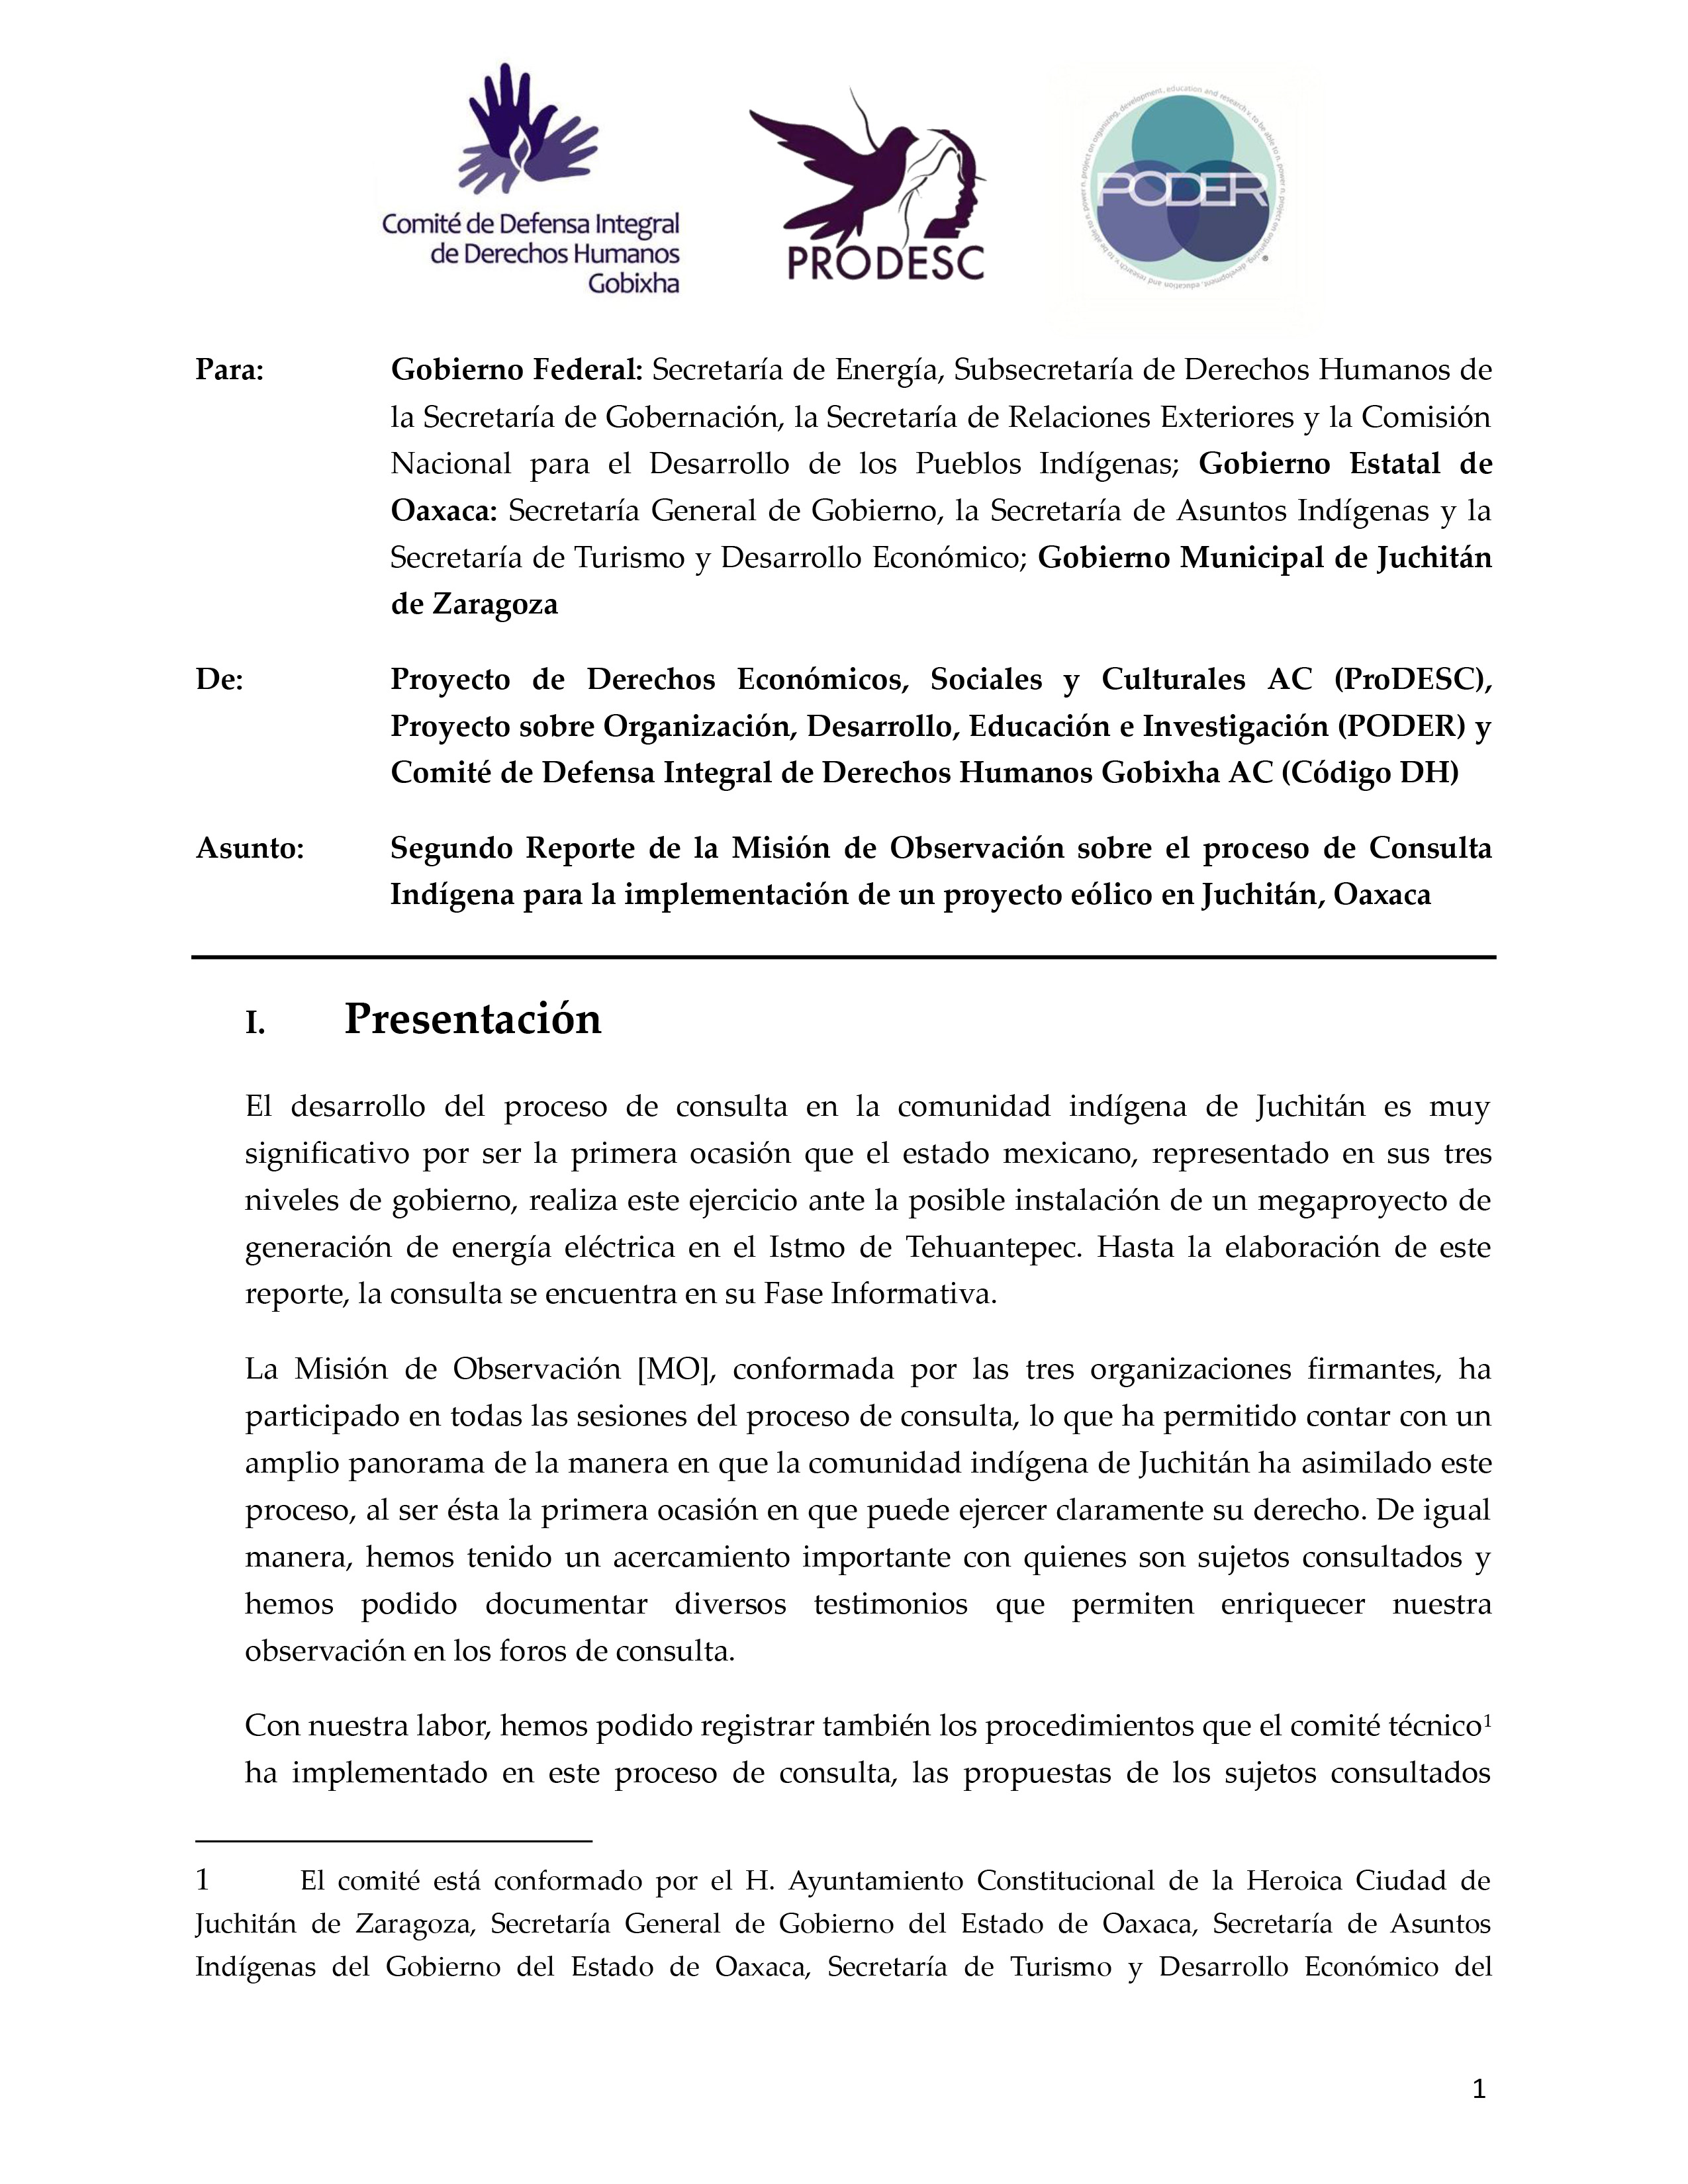 Second Report from the Observation Mission of the Public Consultation in Juchitán, Oaxaca: PODER, ProDESC, AND Código DH